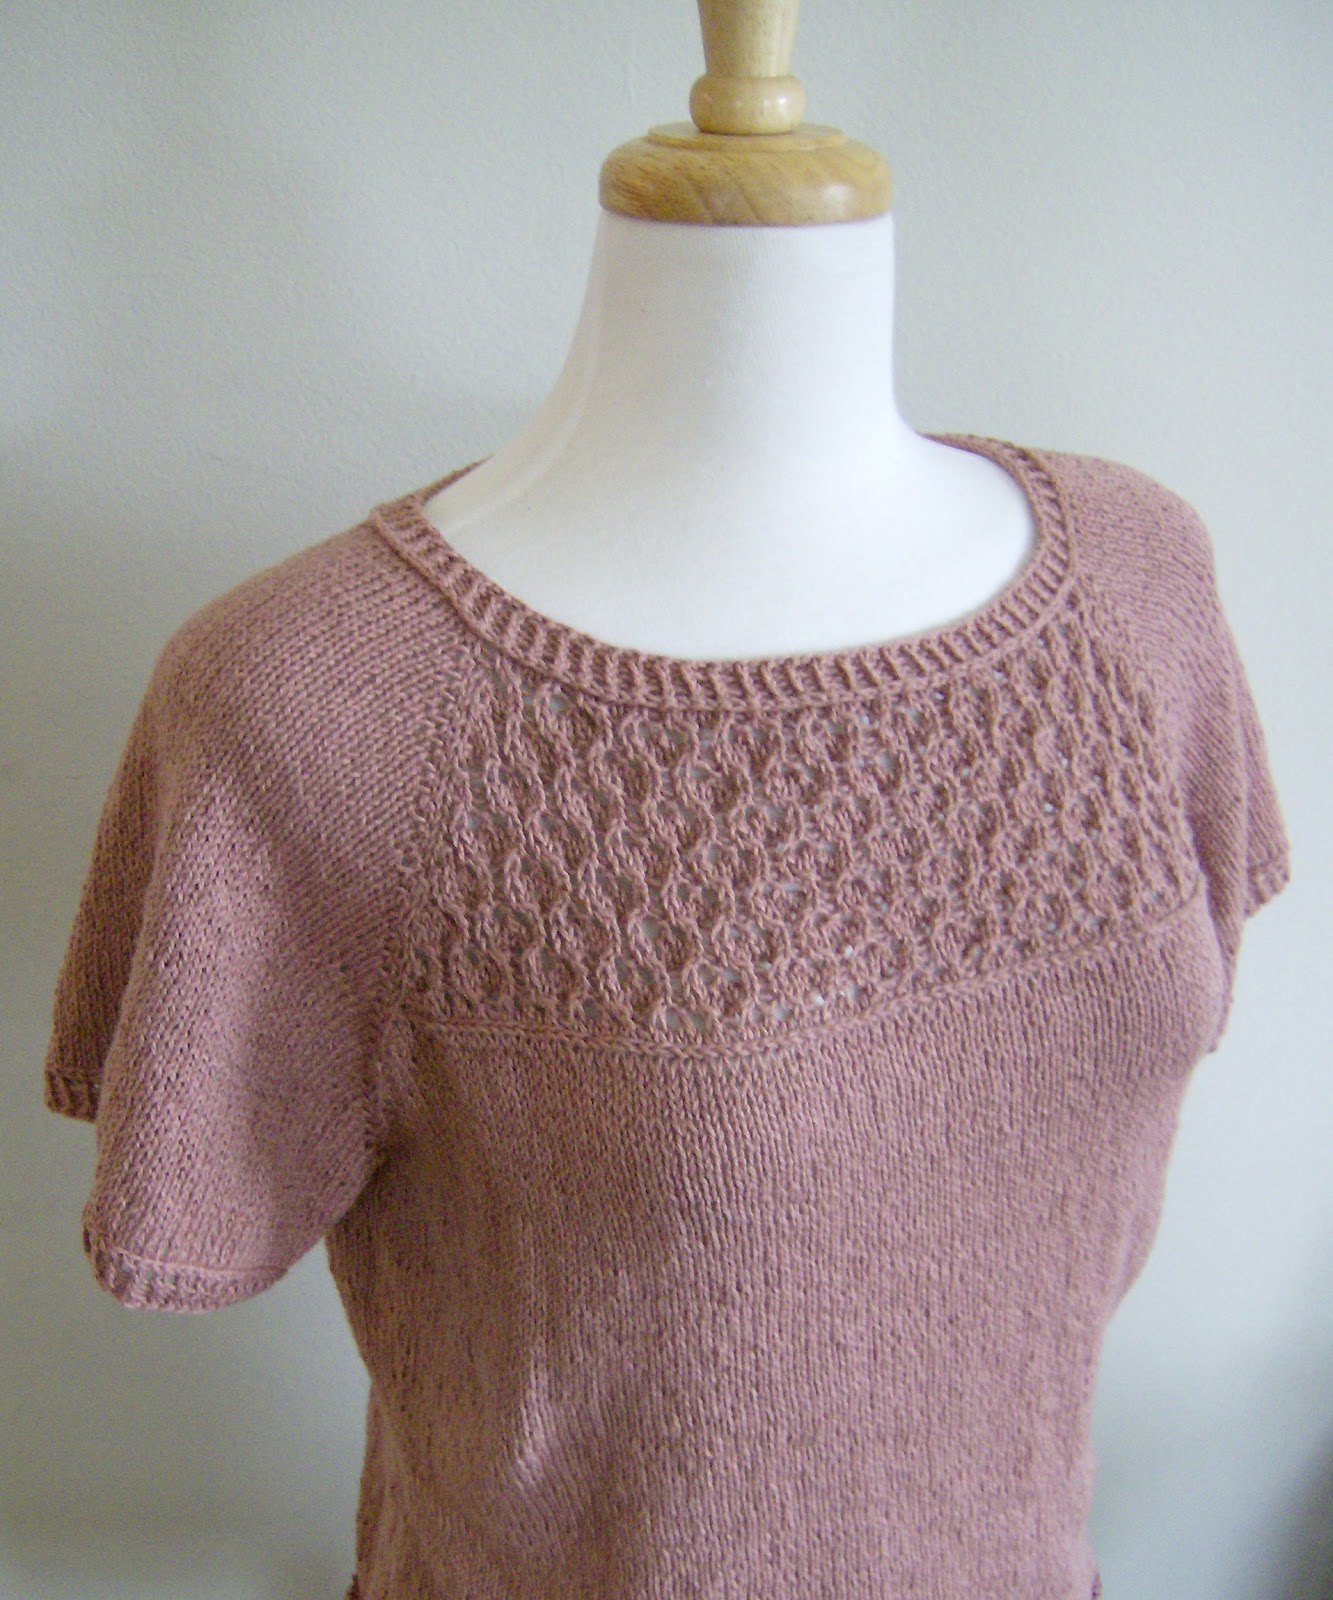 SunFunLiving Knits: New Designs!